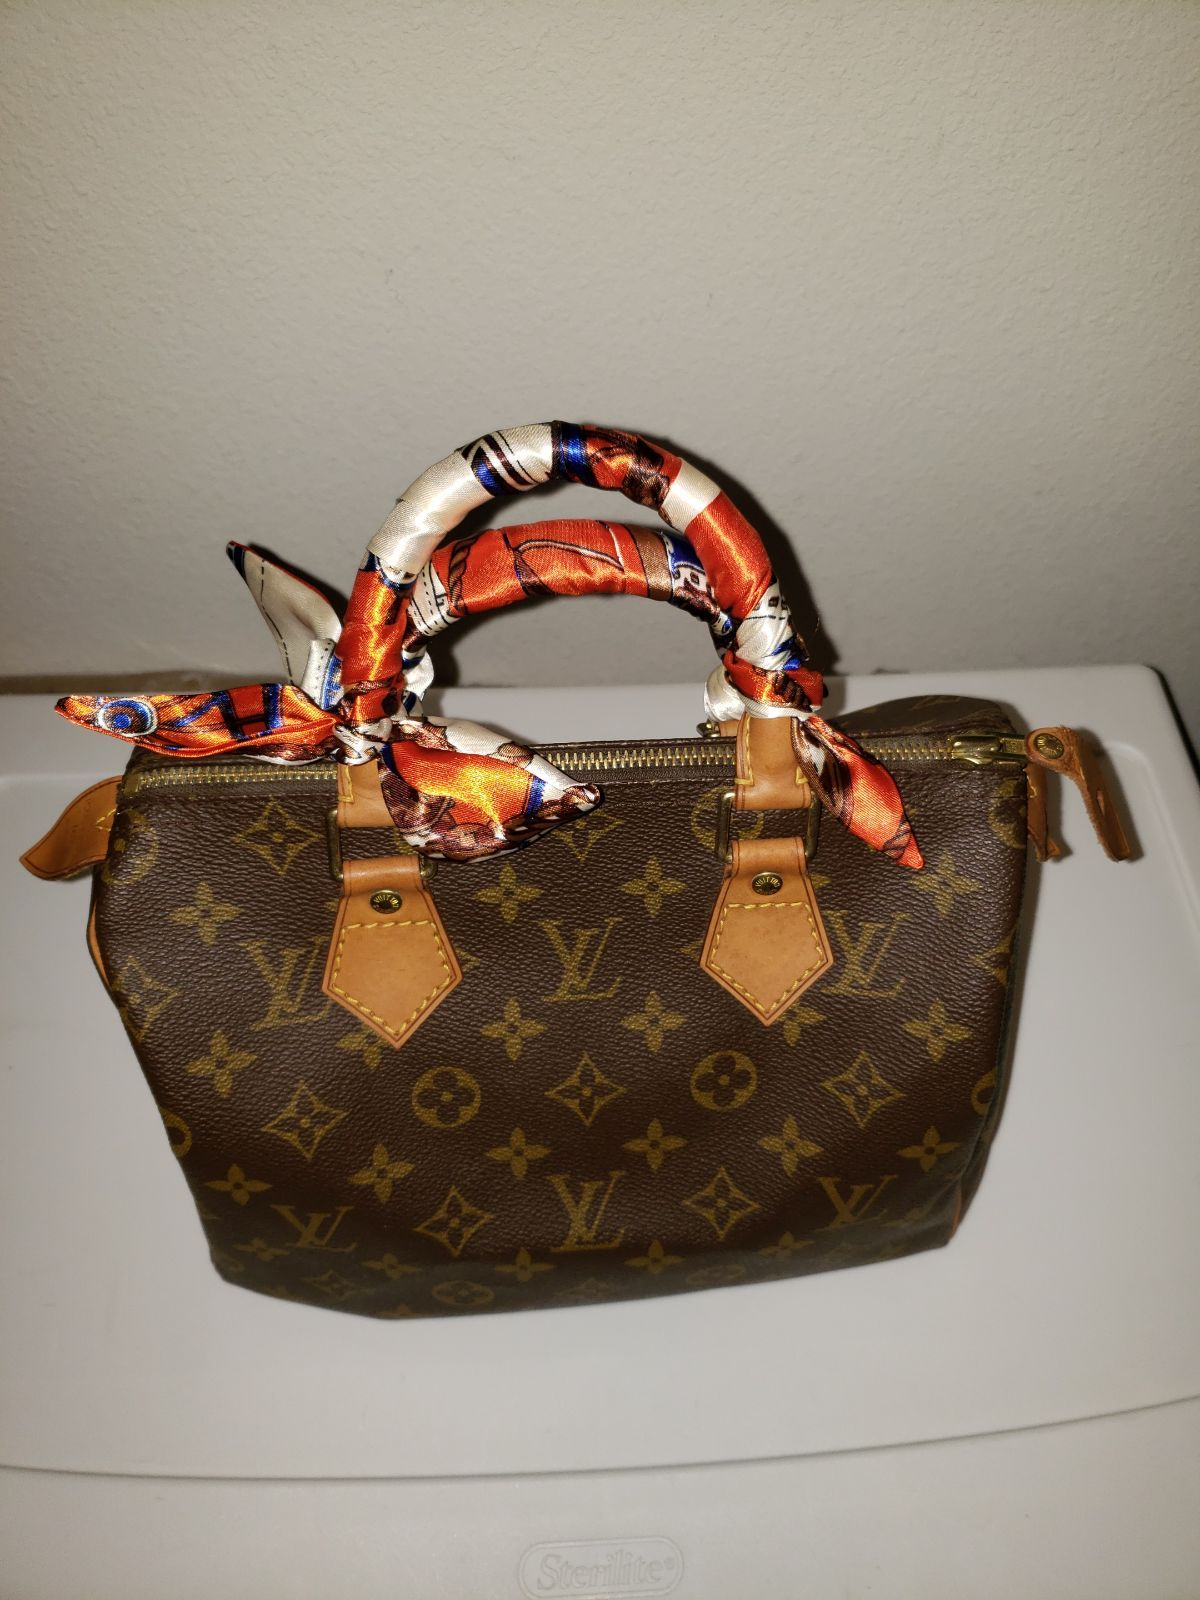 Preloved Speedy 25 Honey Patina Color Pls Check The Flaws Of This Purse Before You Purchase If Louis Vuitton Speedy 25 Louis Vuitton Louis Vuitton Speedy